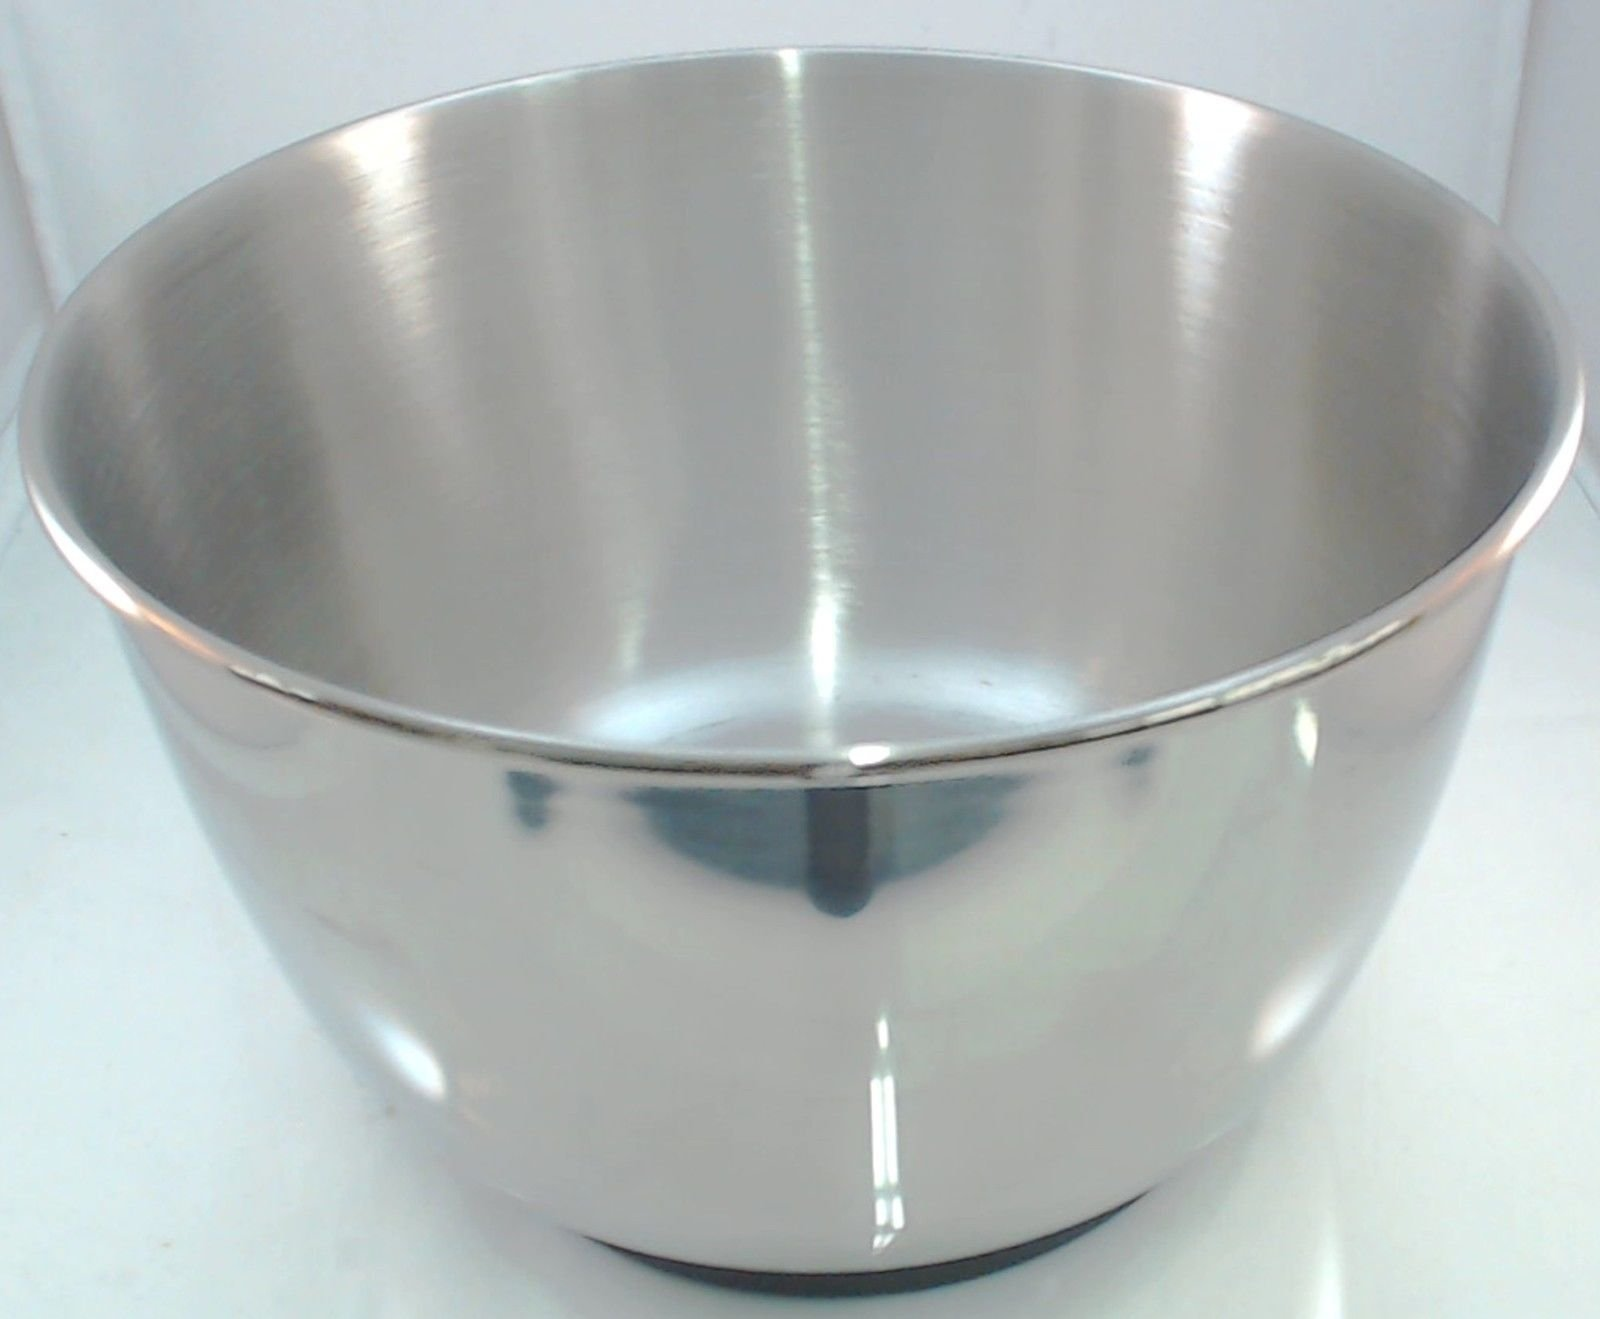 Sunbeam, Oster, Stand Mixer, 3 Quart Stainless Steel Bowl, 144704-000-000